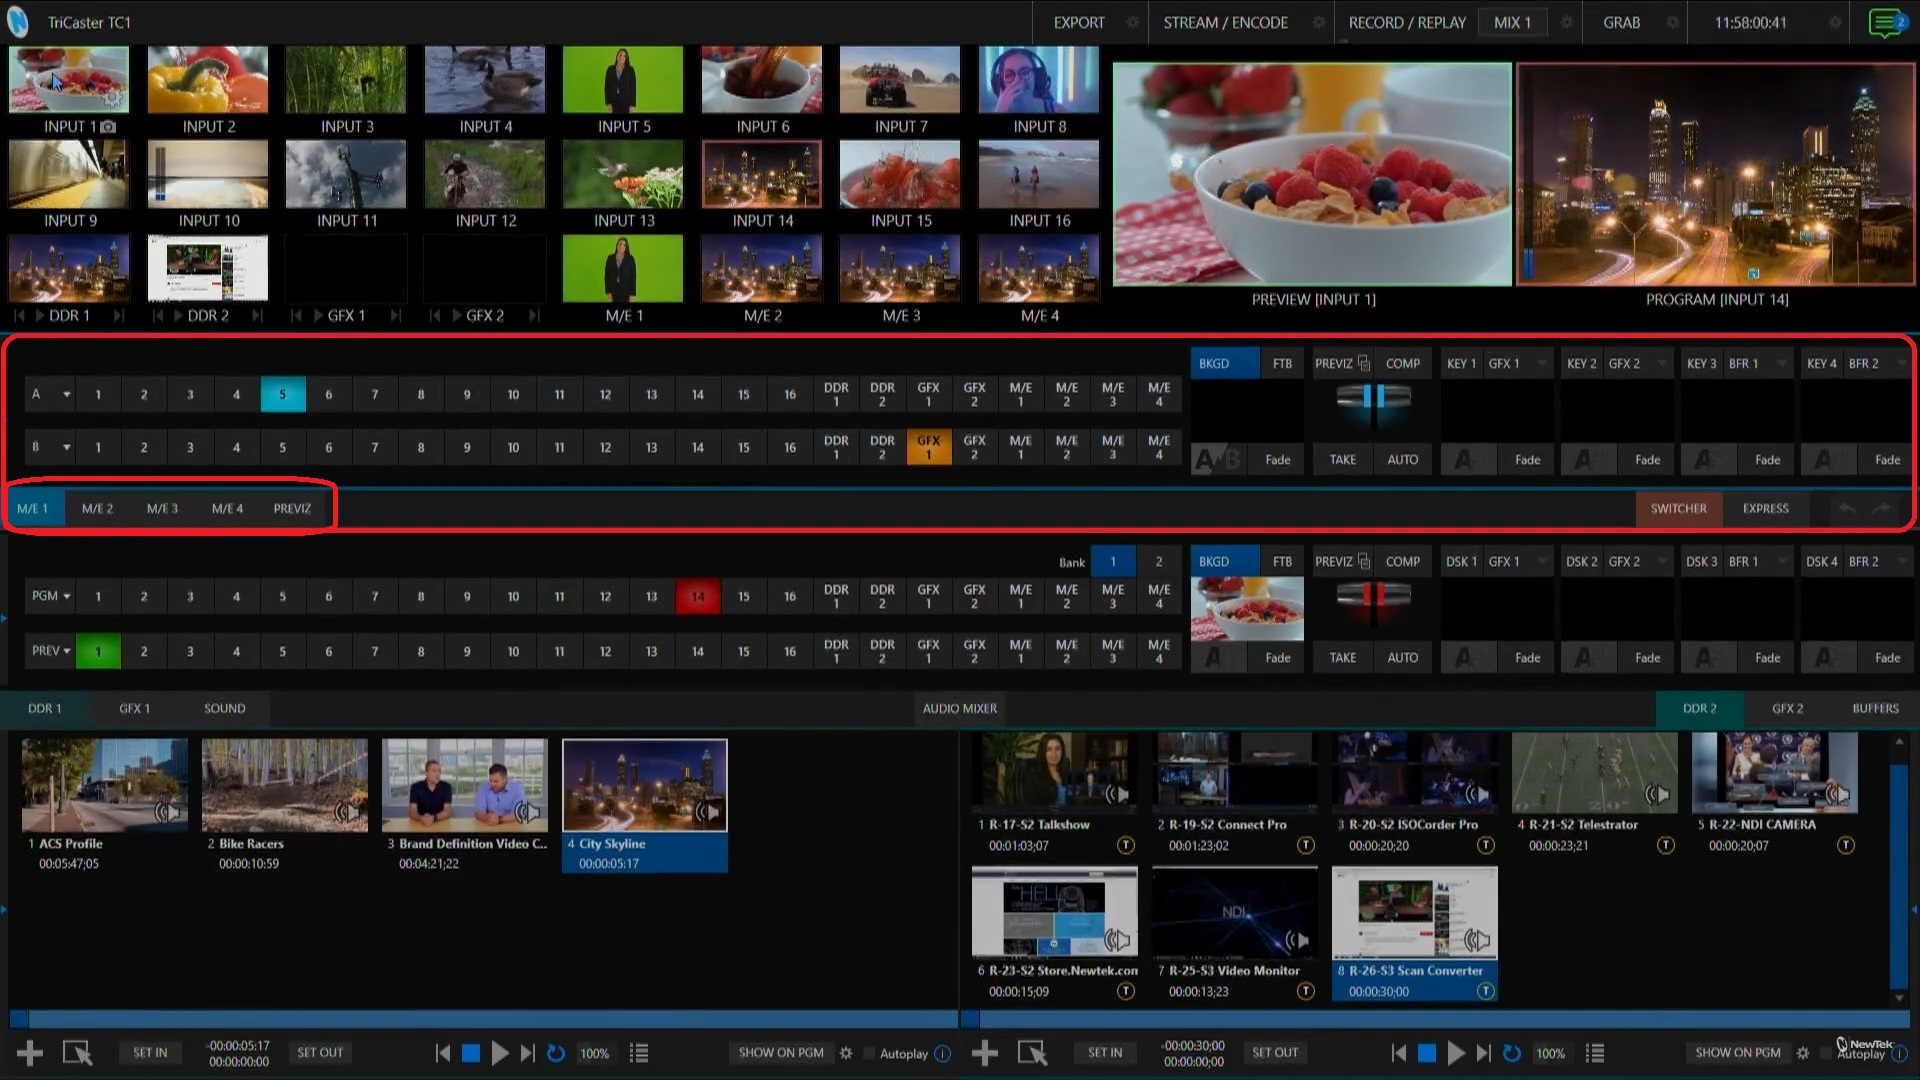 TriCaster TC1 Live Production Interface with M/E section circled